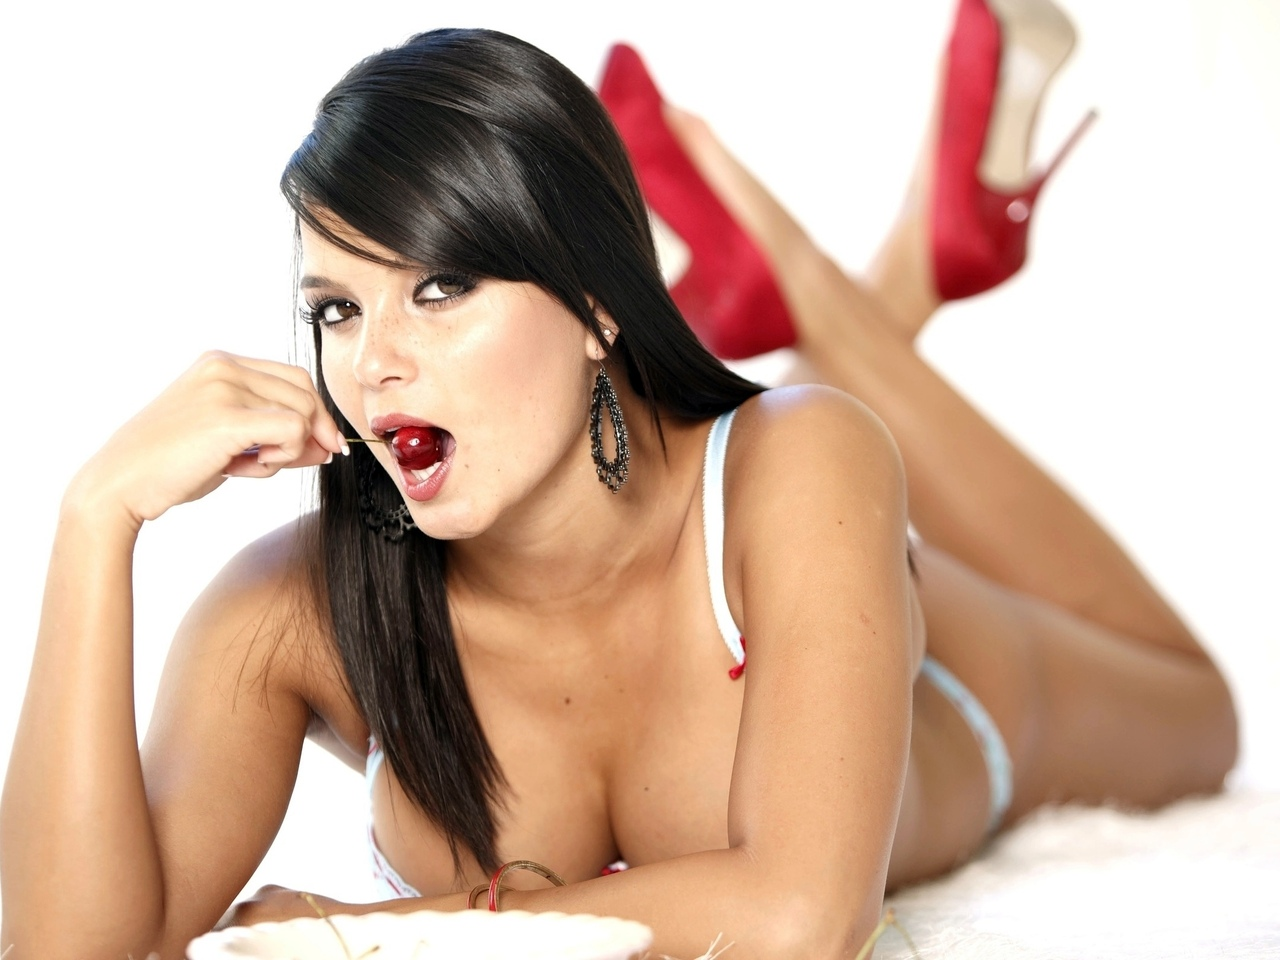 sasha cane, brunette, cherry, red shoes